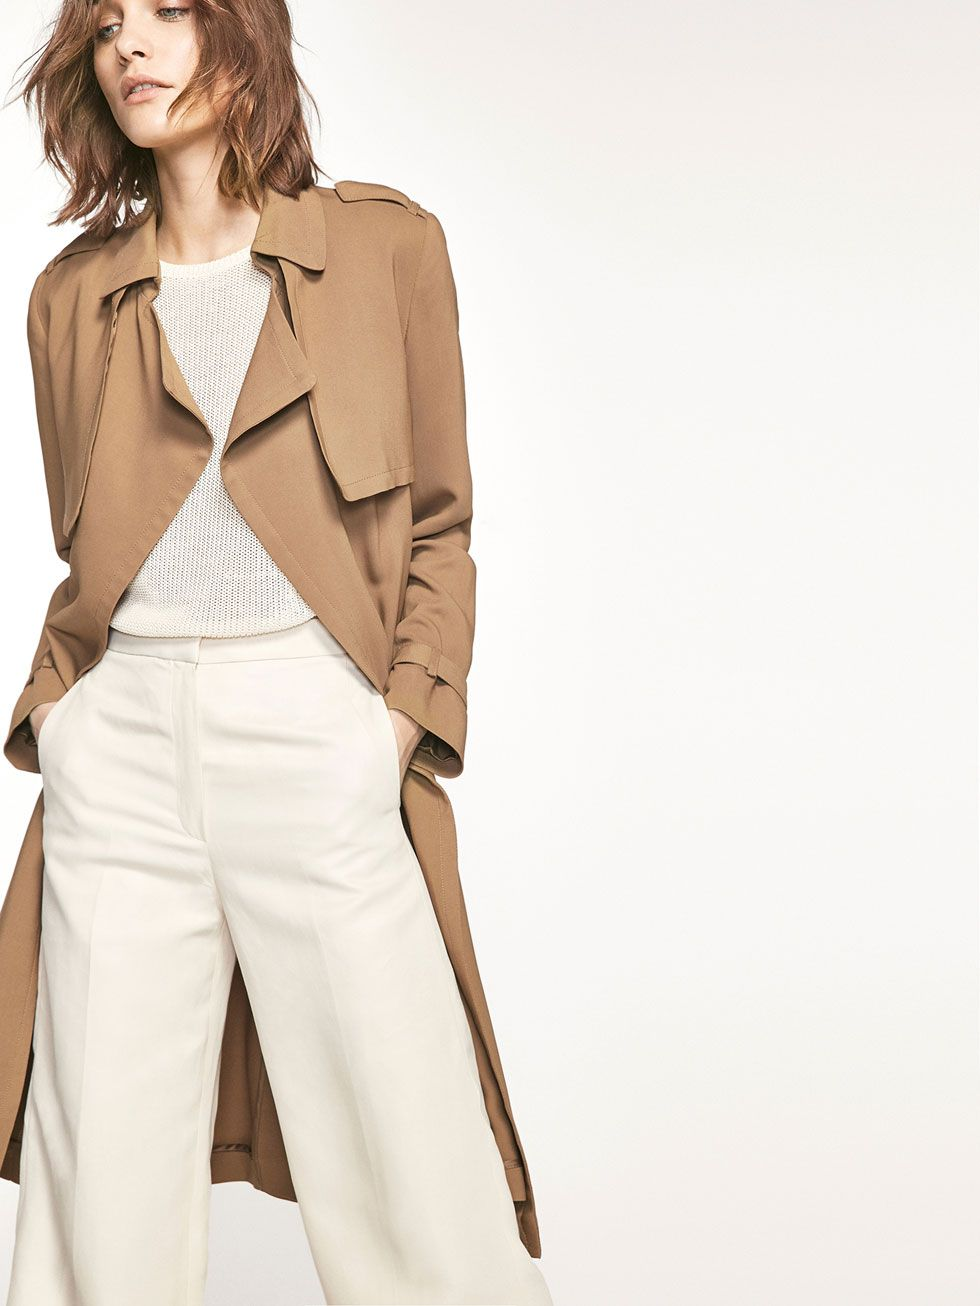 ee3e0c192 Autumn Spring summer 2017 Women´s FLOWING TRENCH COAT at Massimo Dutti for  245. Effortless elegance!